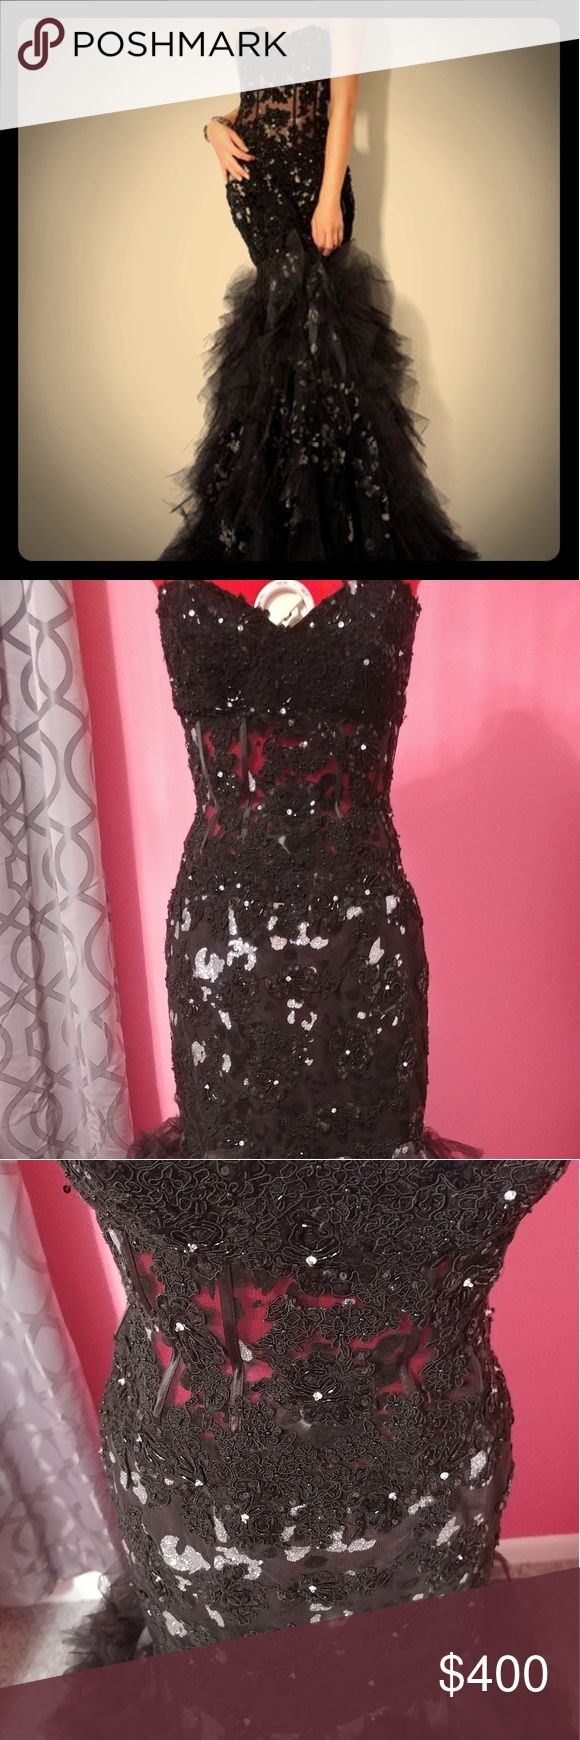 Stunning jovani black mermaid gown size 6 Jovani 172008. Google this dress and see how flattering it is on real girls, absolutely breathtaking, you will stand out anywhere. Sheer bodice that looks like a corset and has boning that will shape the midsection. Bottom is fluffy tulle material. Worn once for pictures. Make sure to look up Jovani' s prom size chart. Jovani Dresses Prom